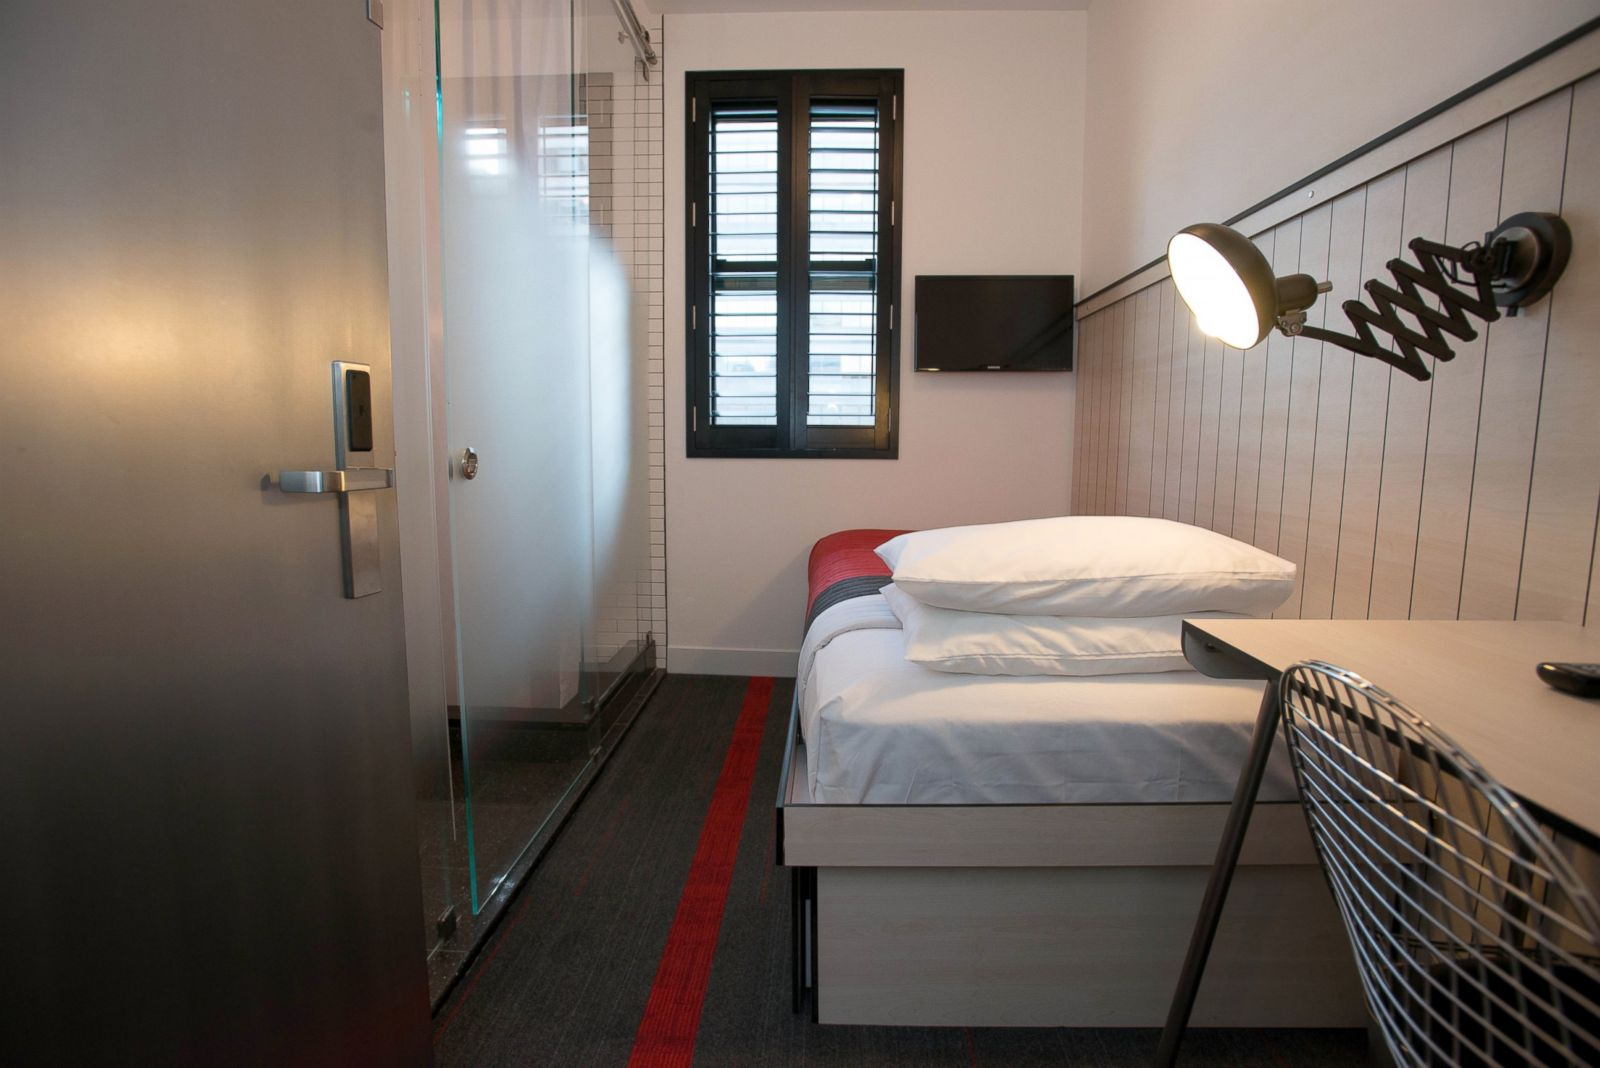 the smallest hotel rooms in new york city according to